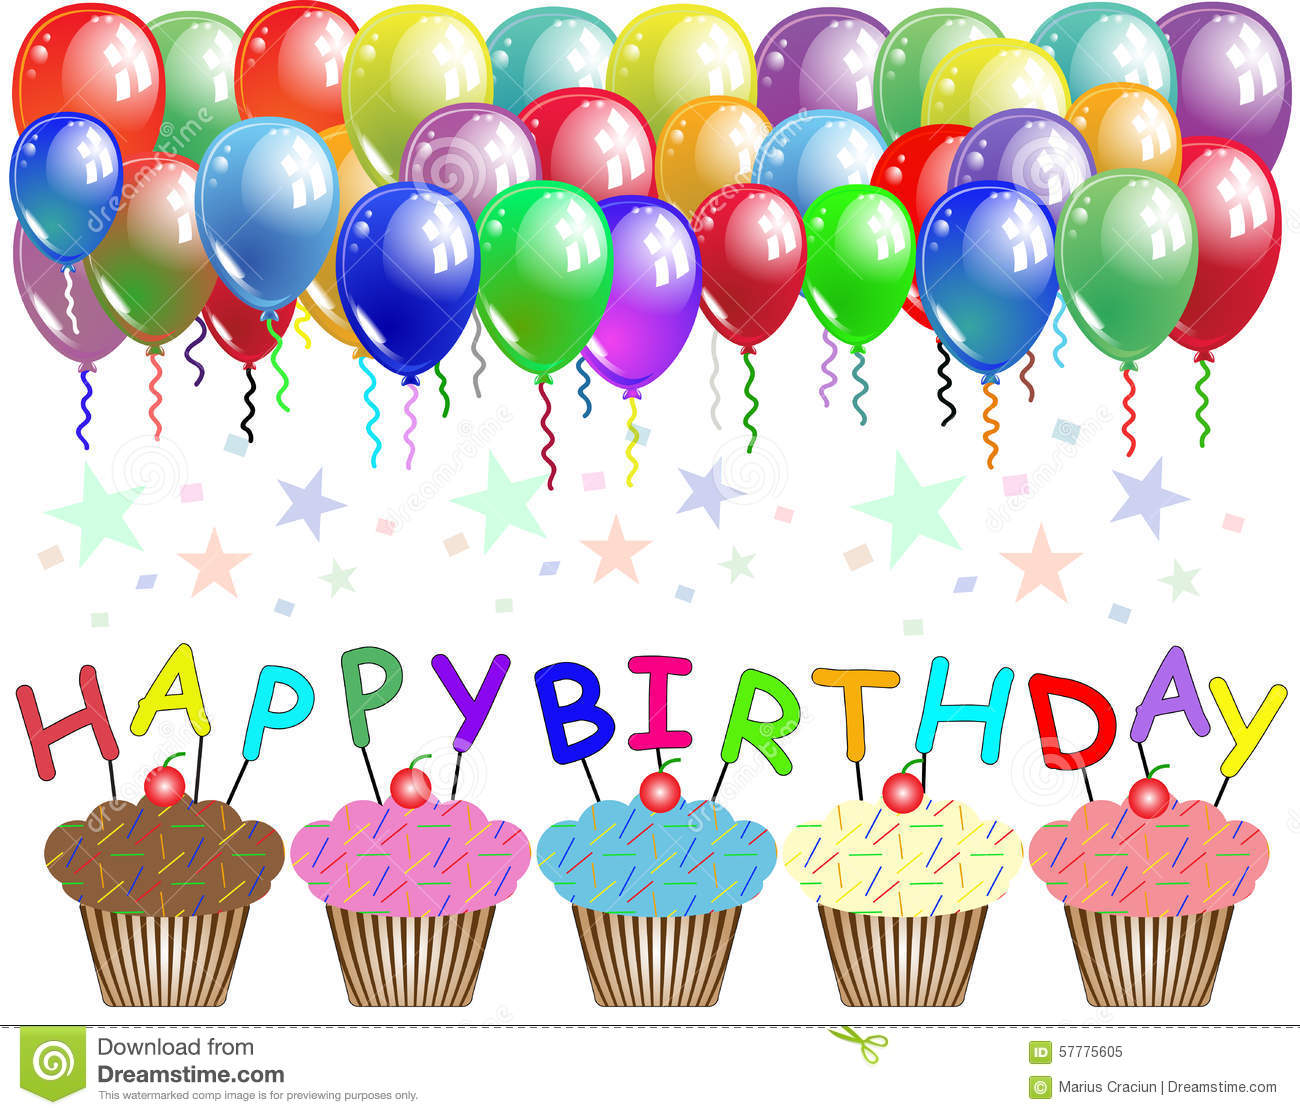 birthday poster ; happy-birthday-poster-card-balloons-cupcakes-57775605